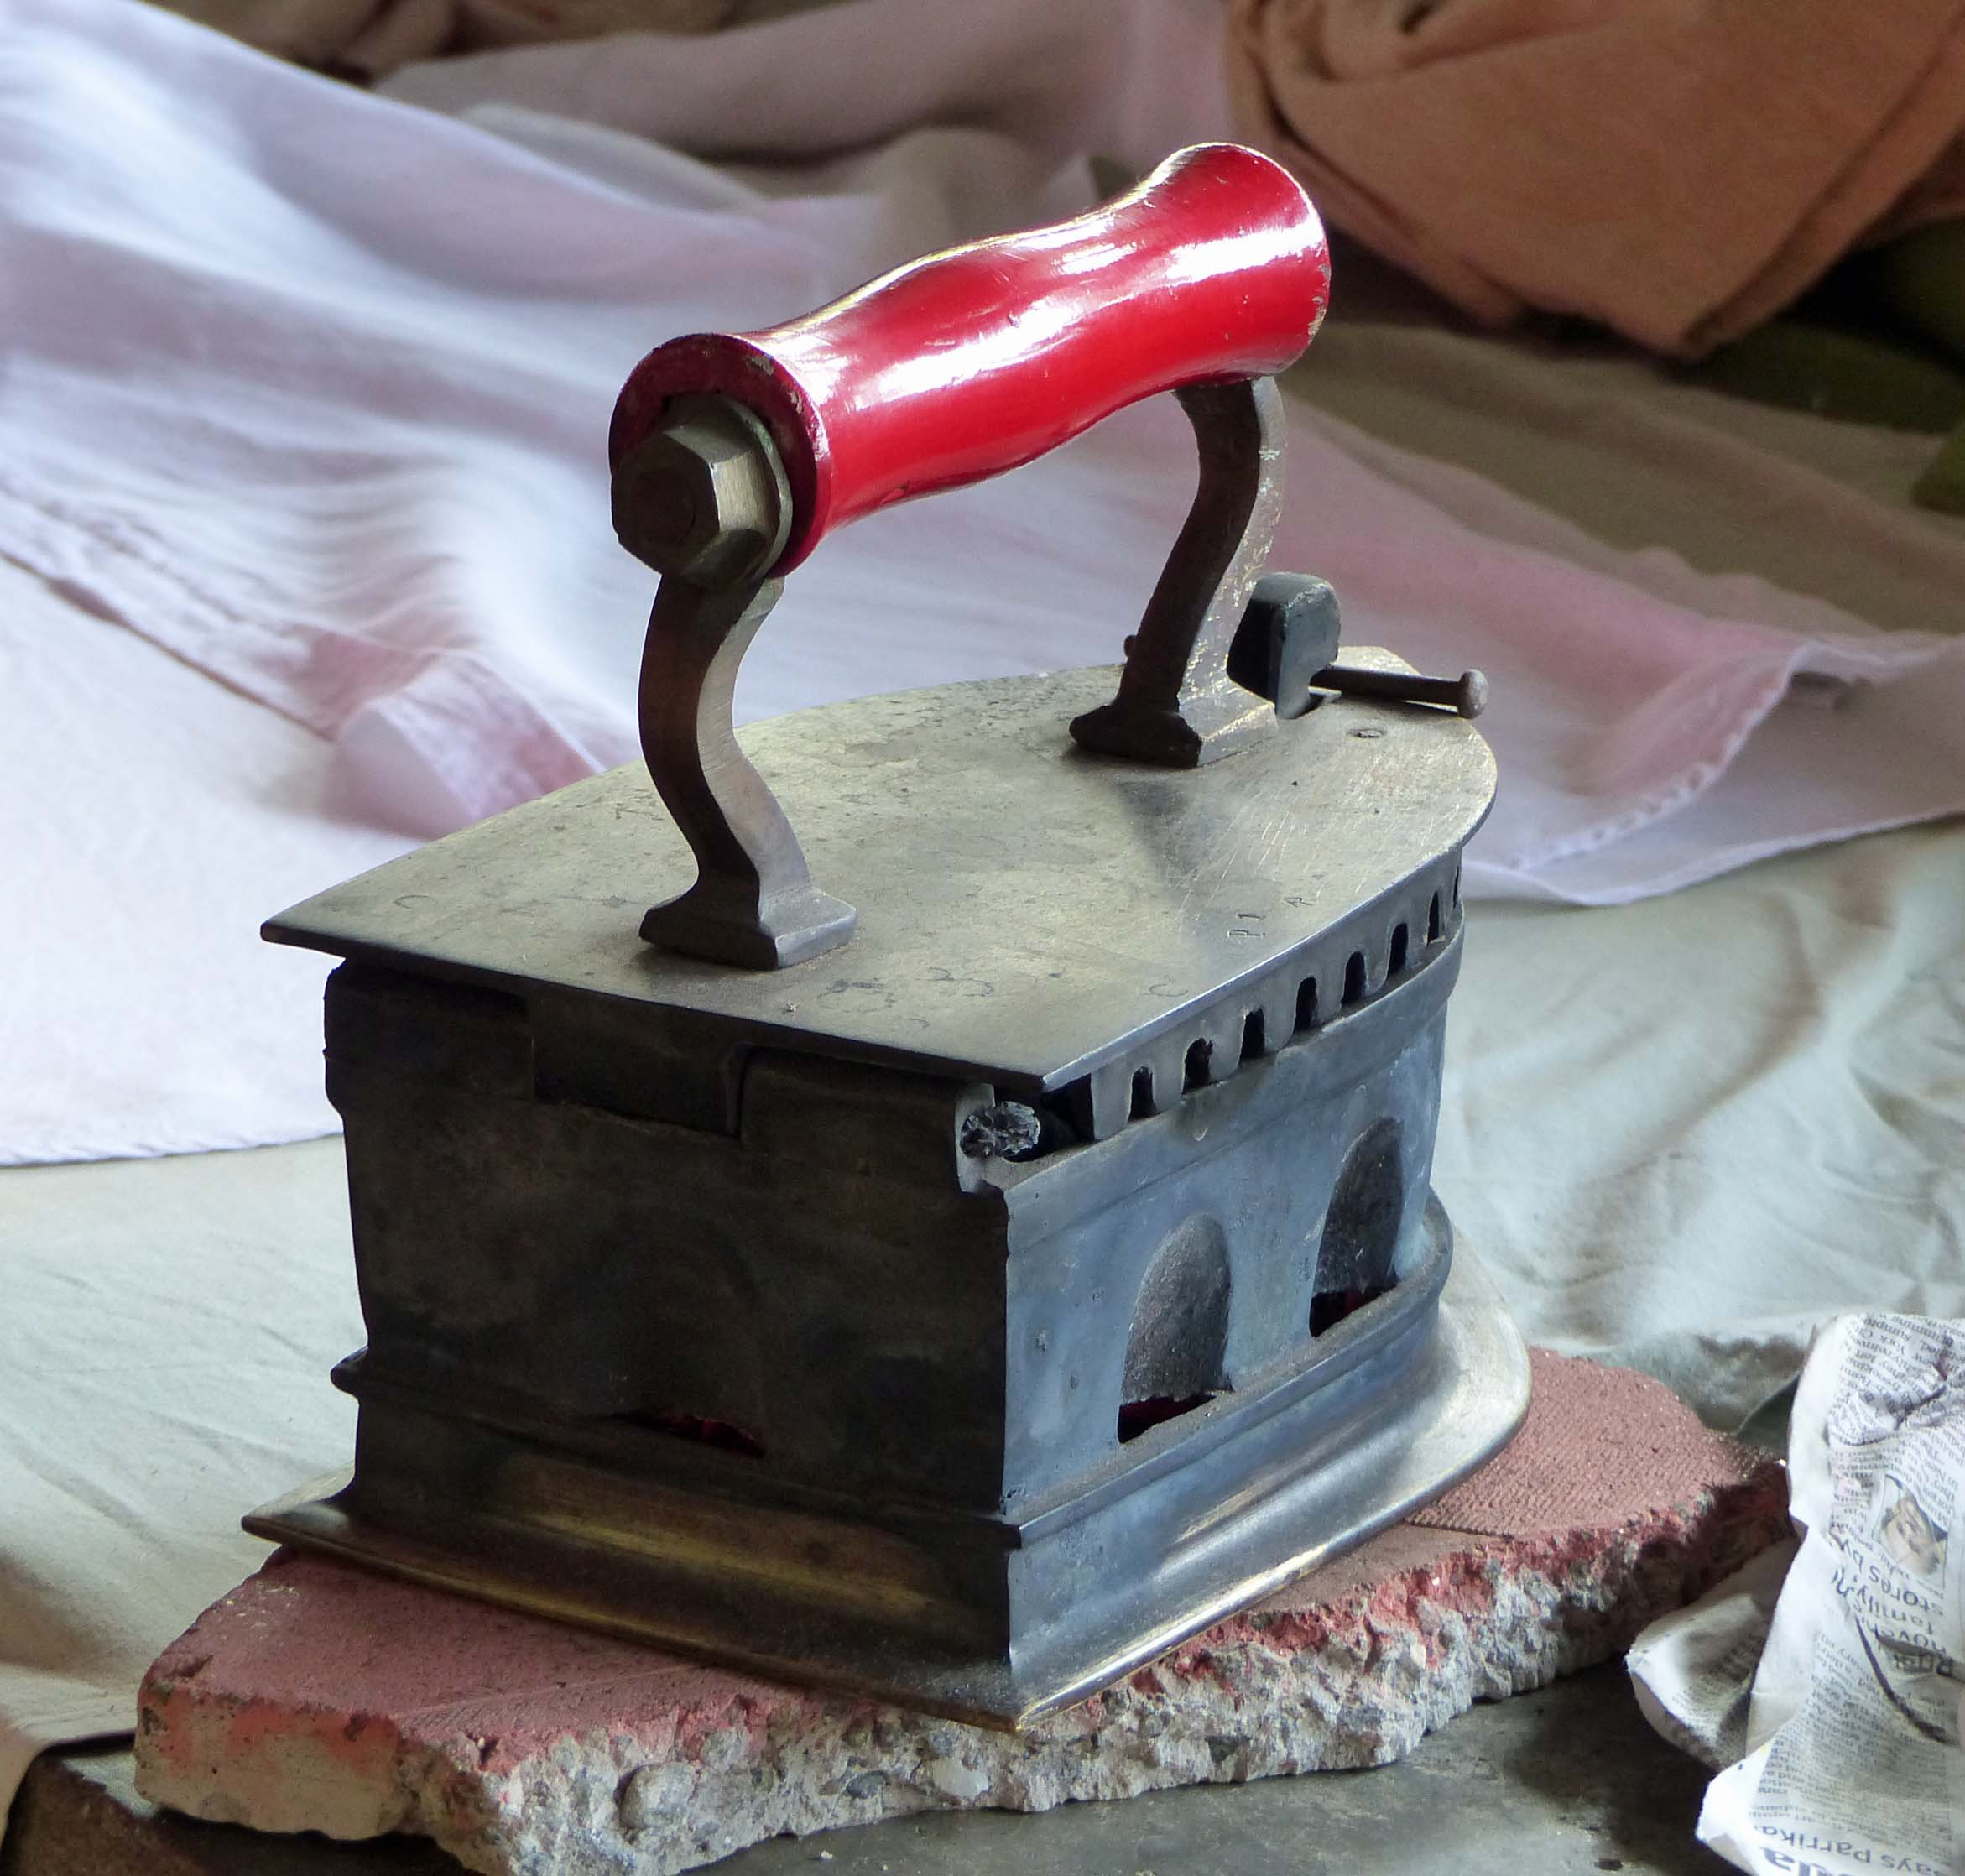 Traditional iron with red handle